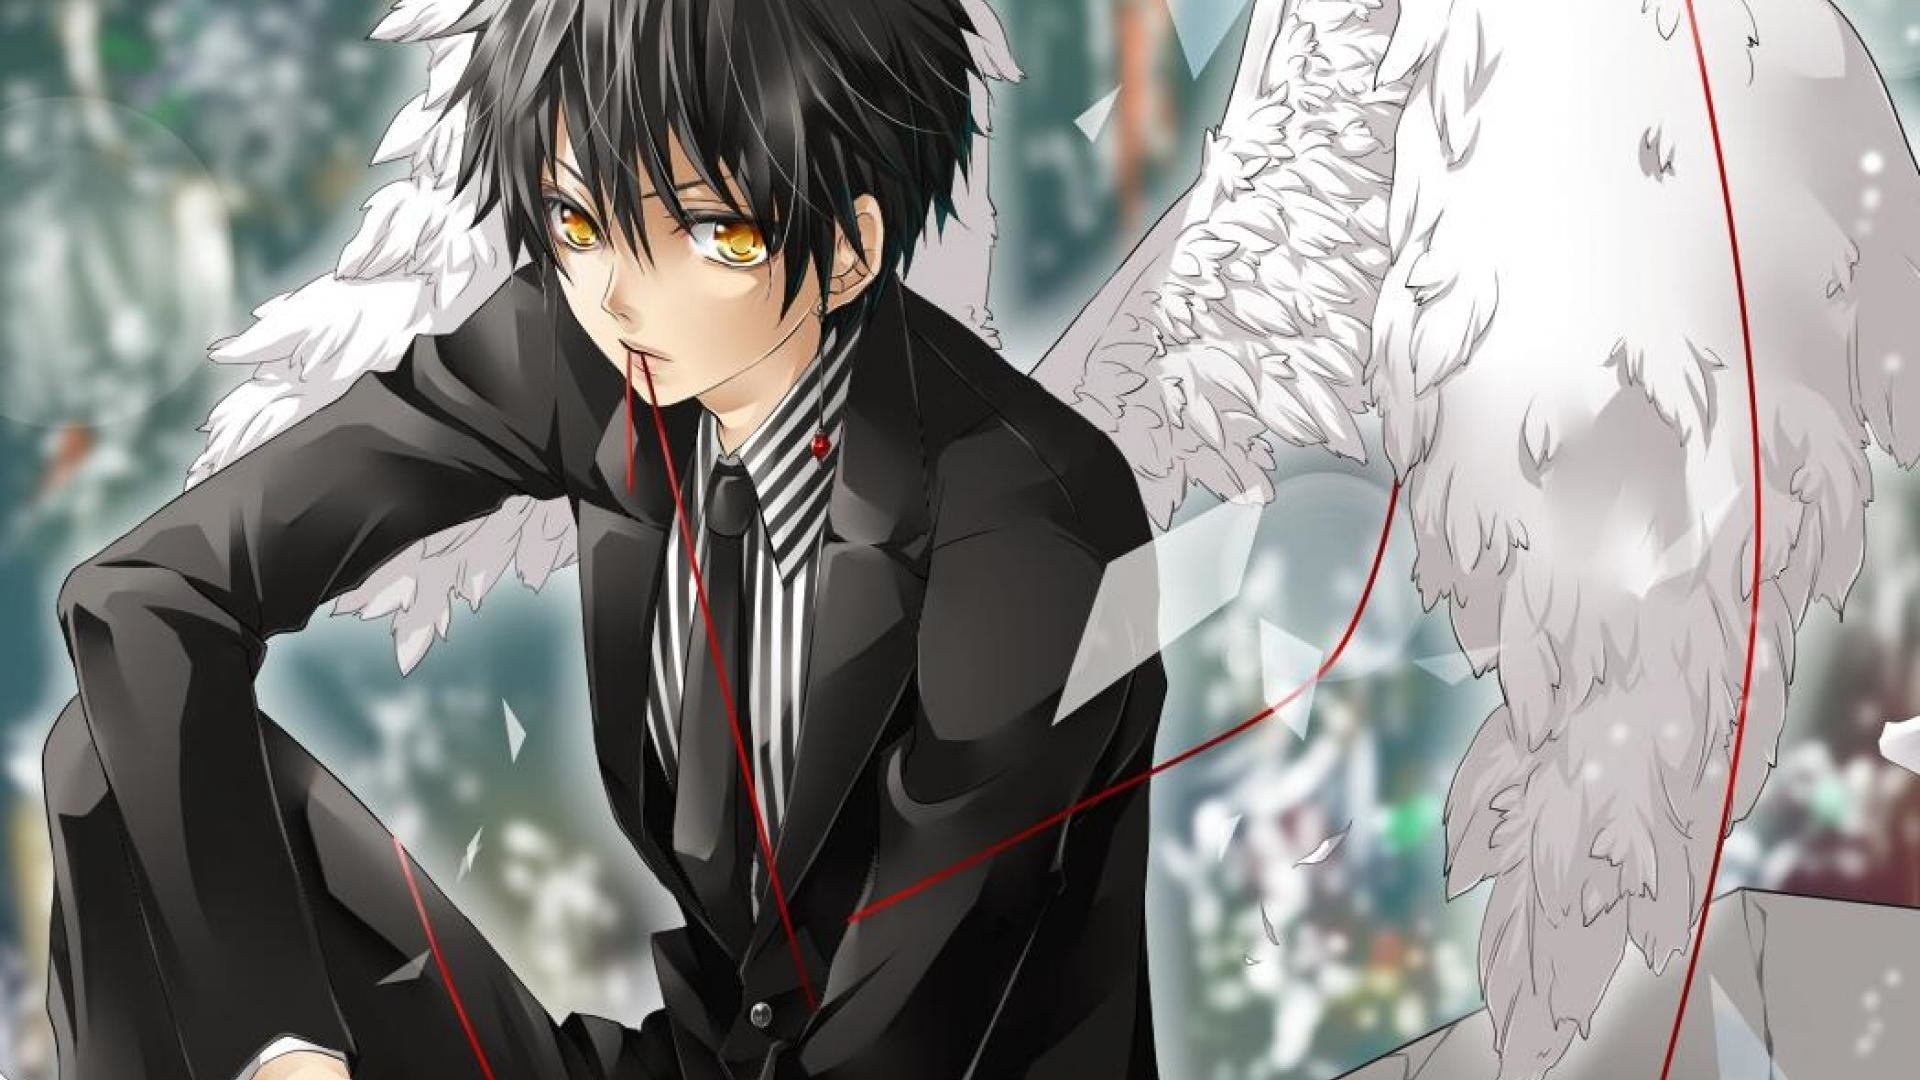 Anime Demon Boy Wallpaper and Background